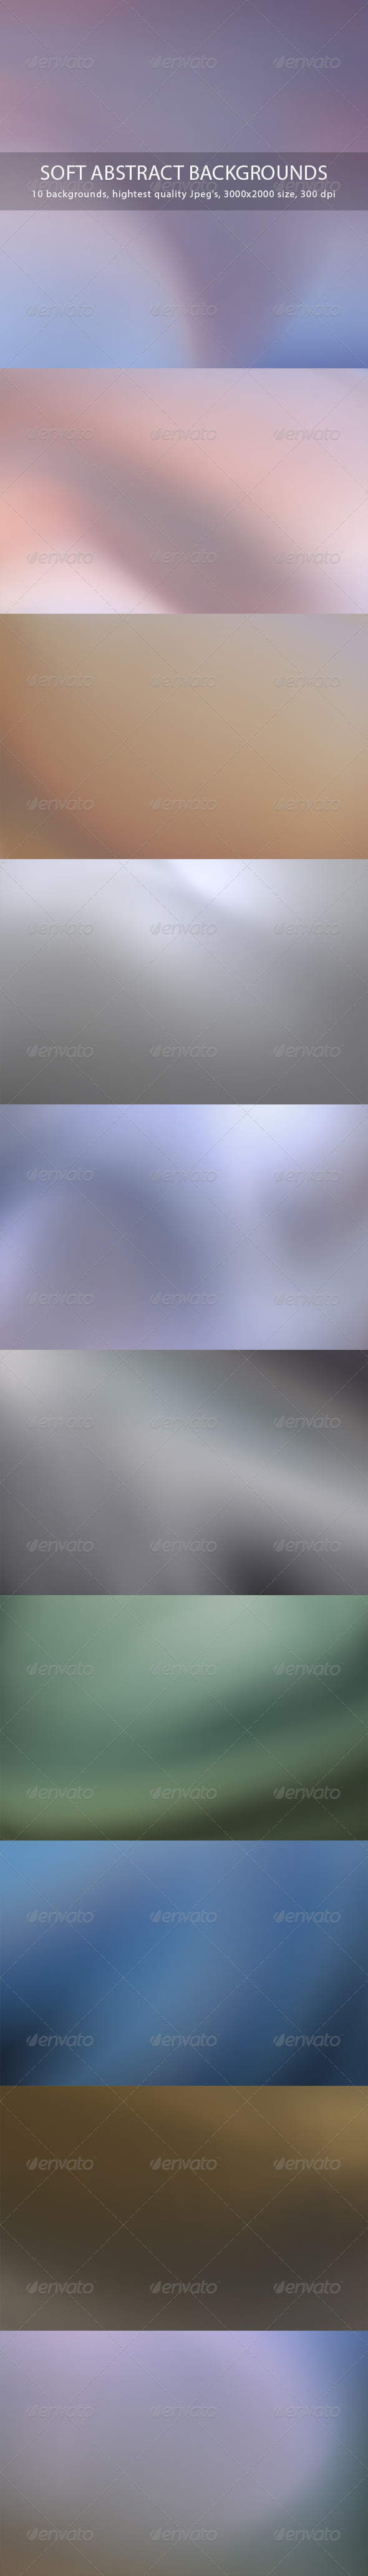 GraphicRiver Soft Abstract Backgrounds 7606971